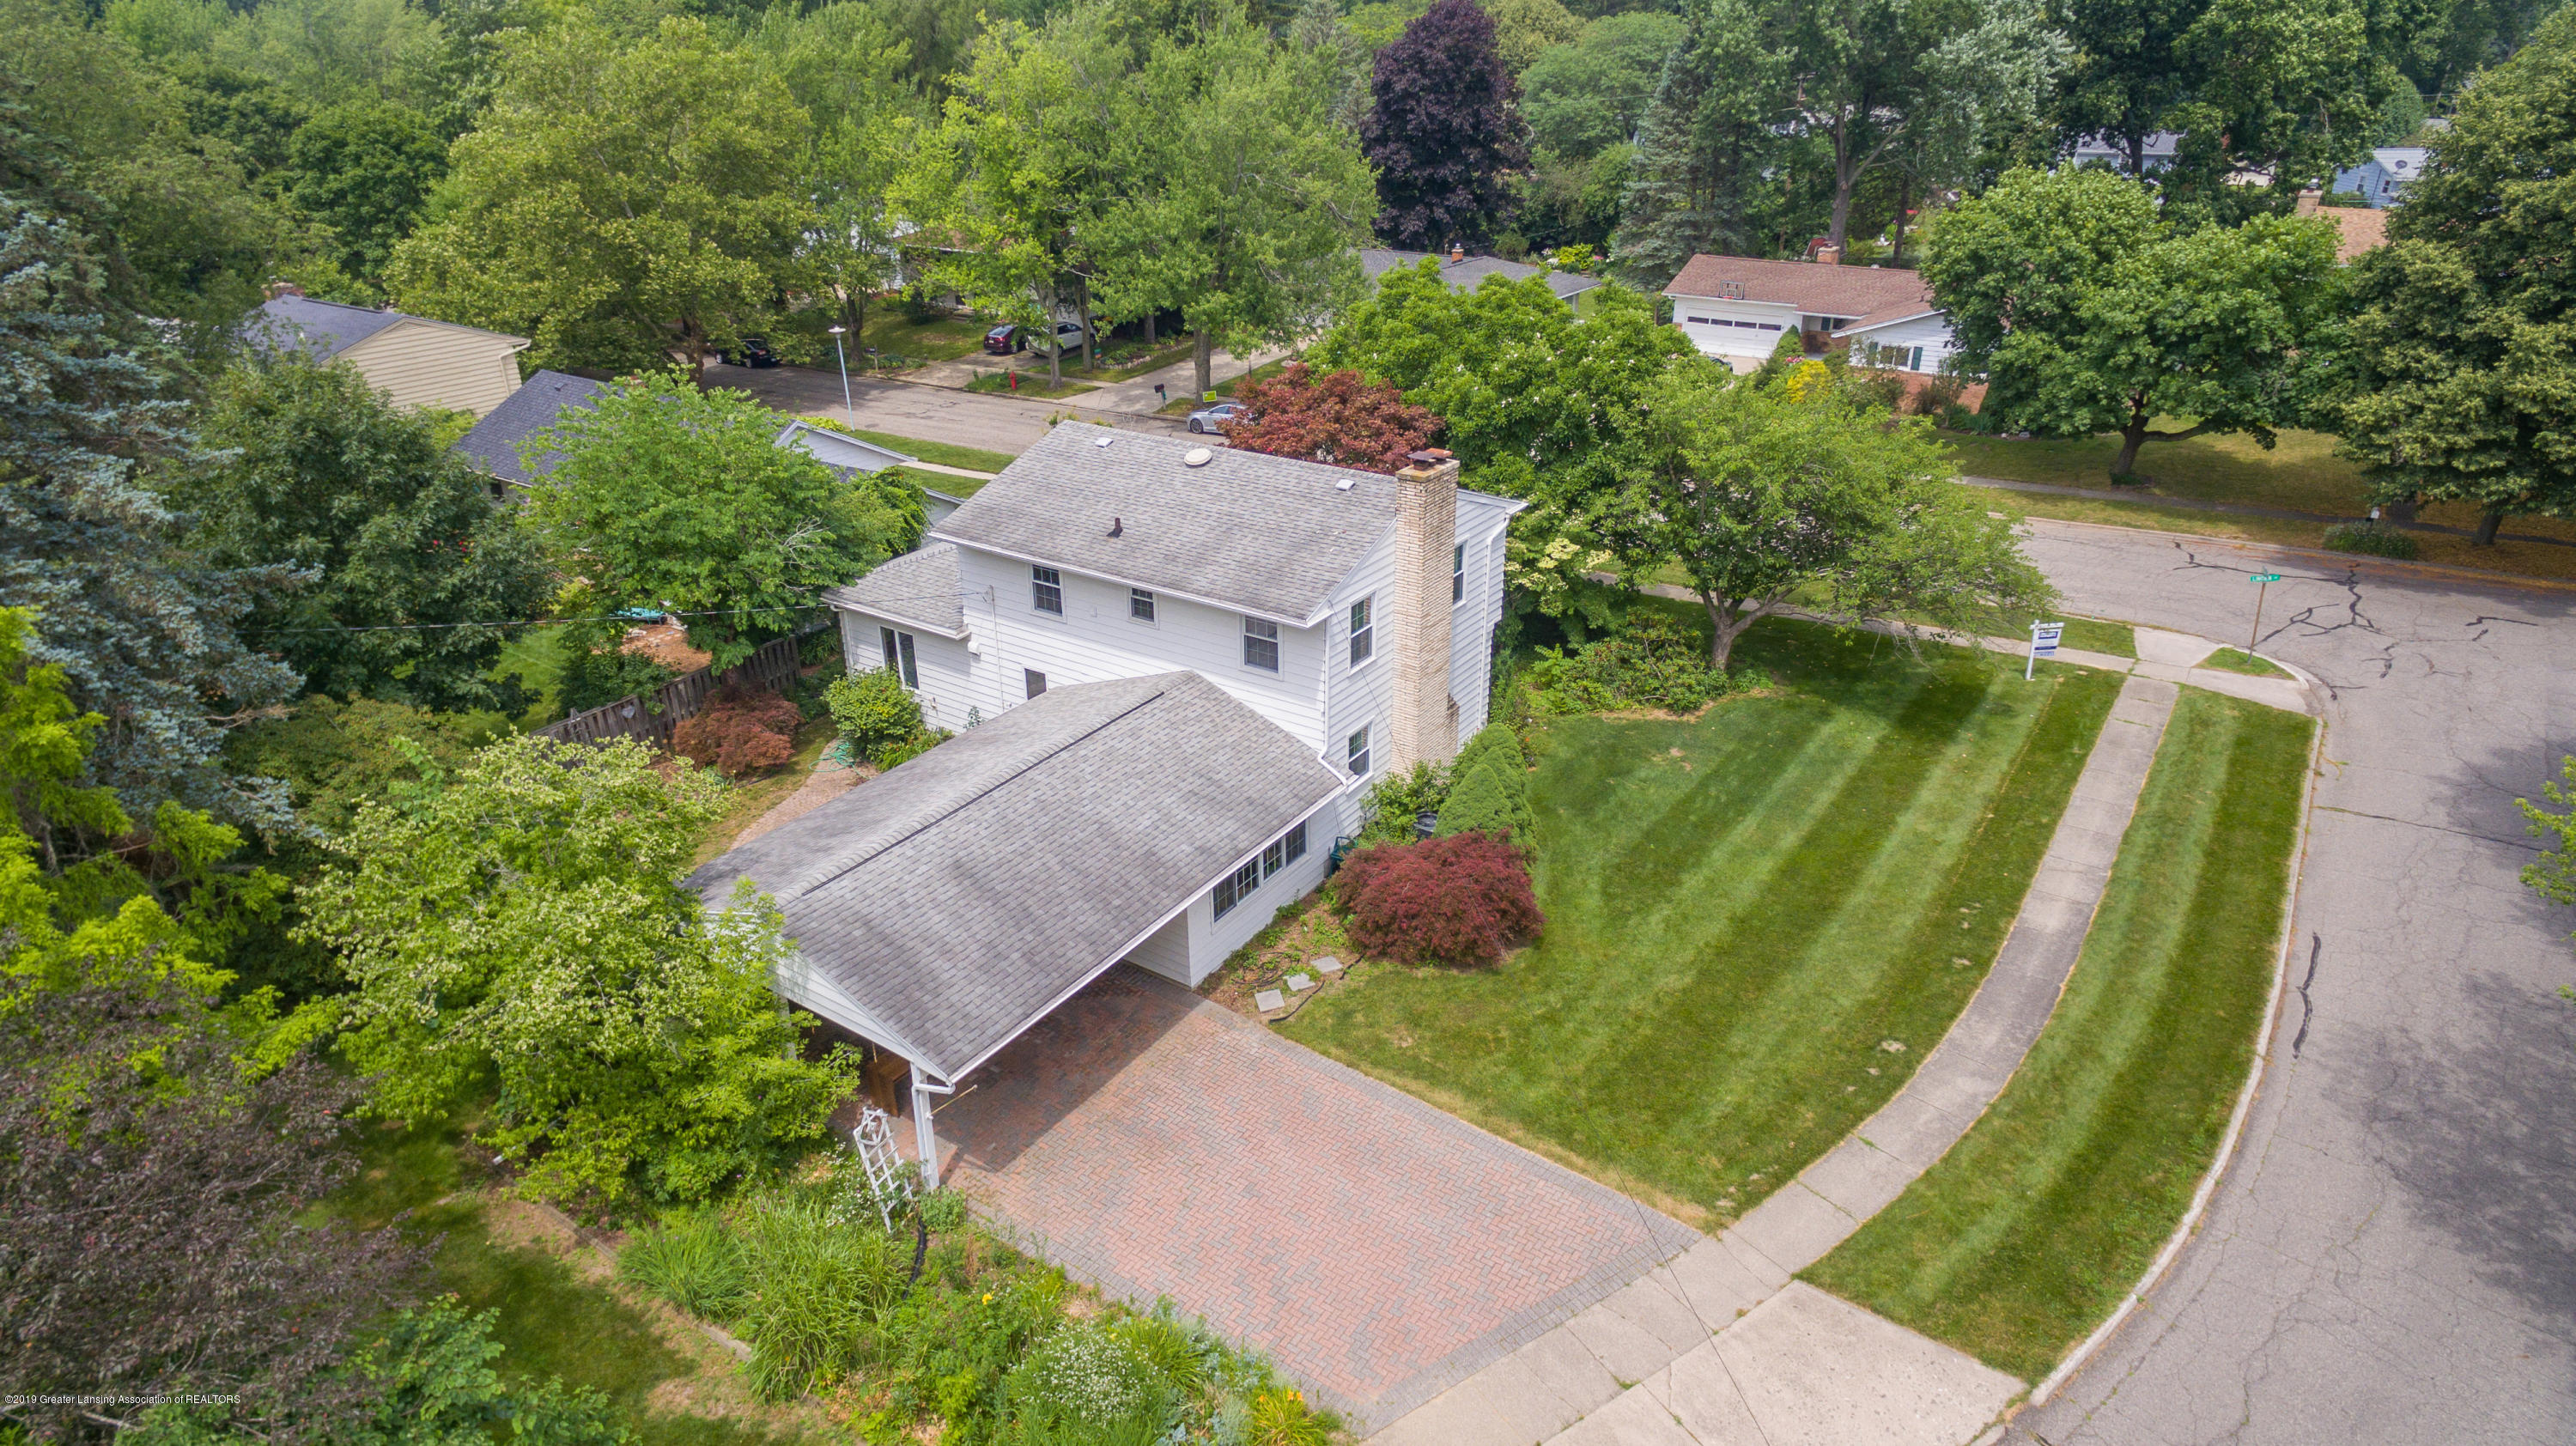 2661 Linden St - Aerial View - 46